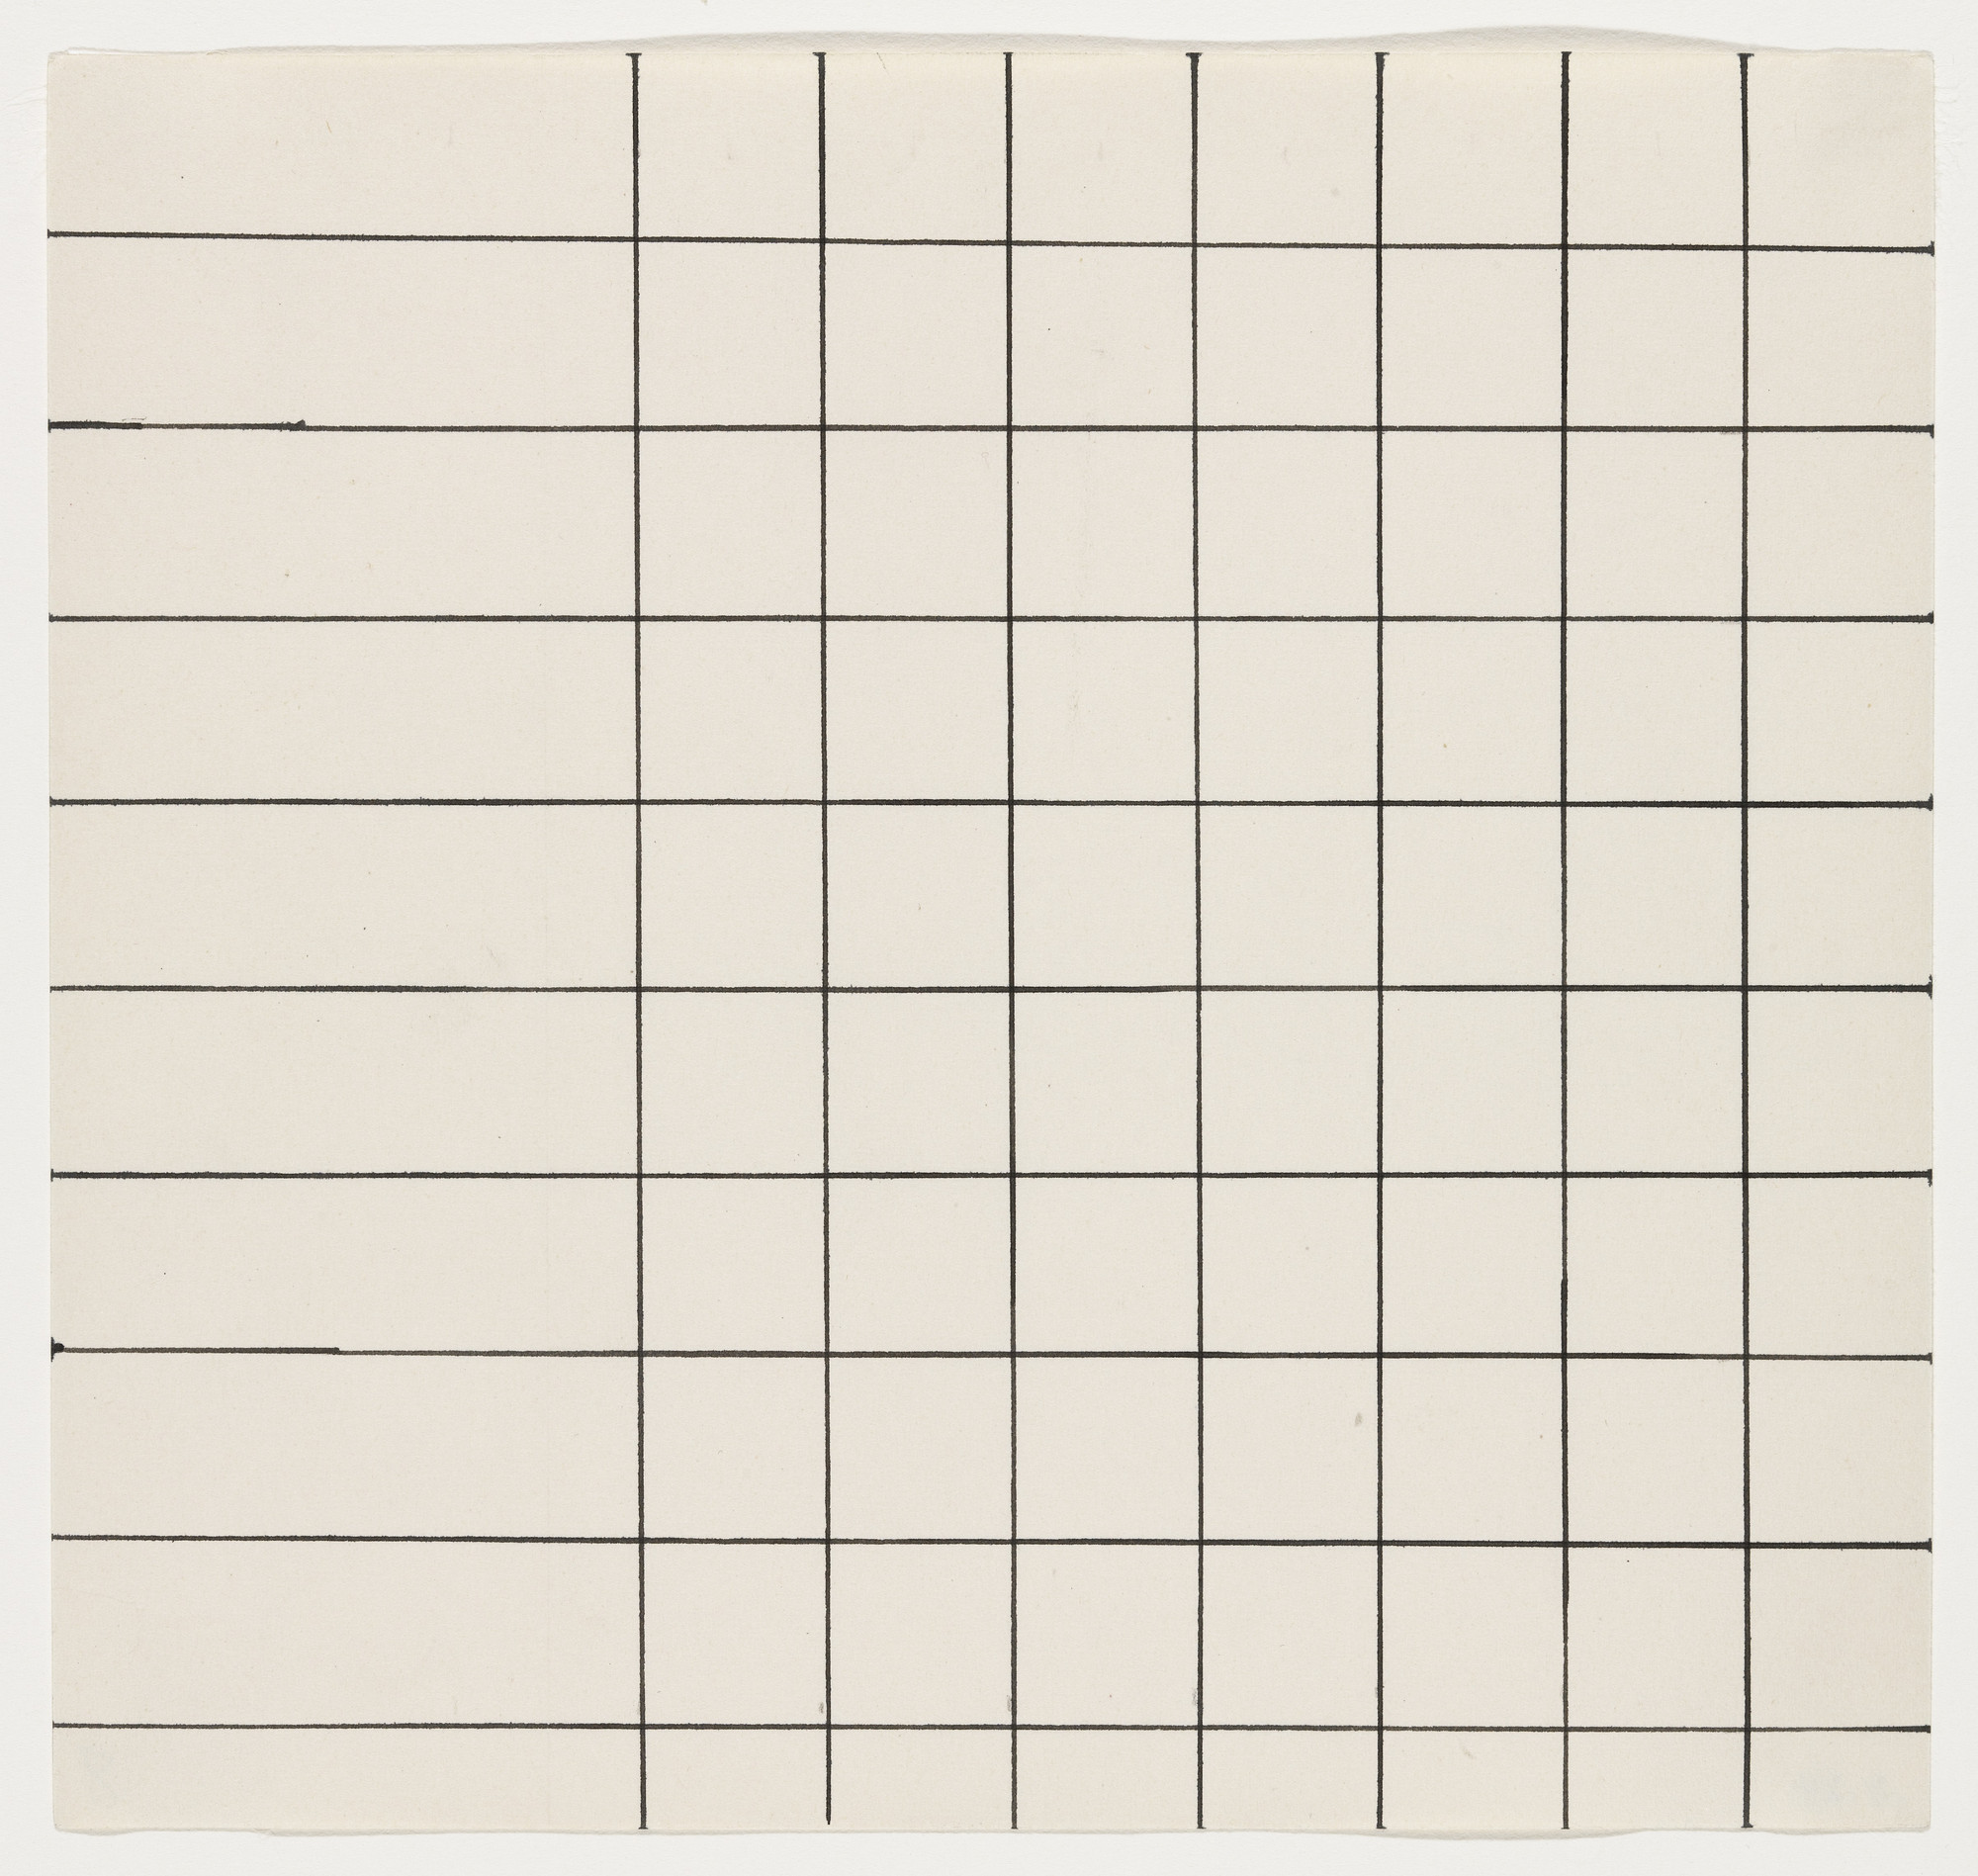 Ellsworth Kelly. Grid Lines from the series Line Form Color. 1951